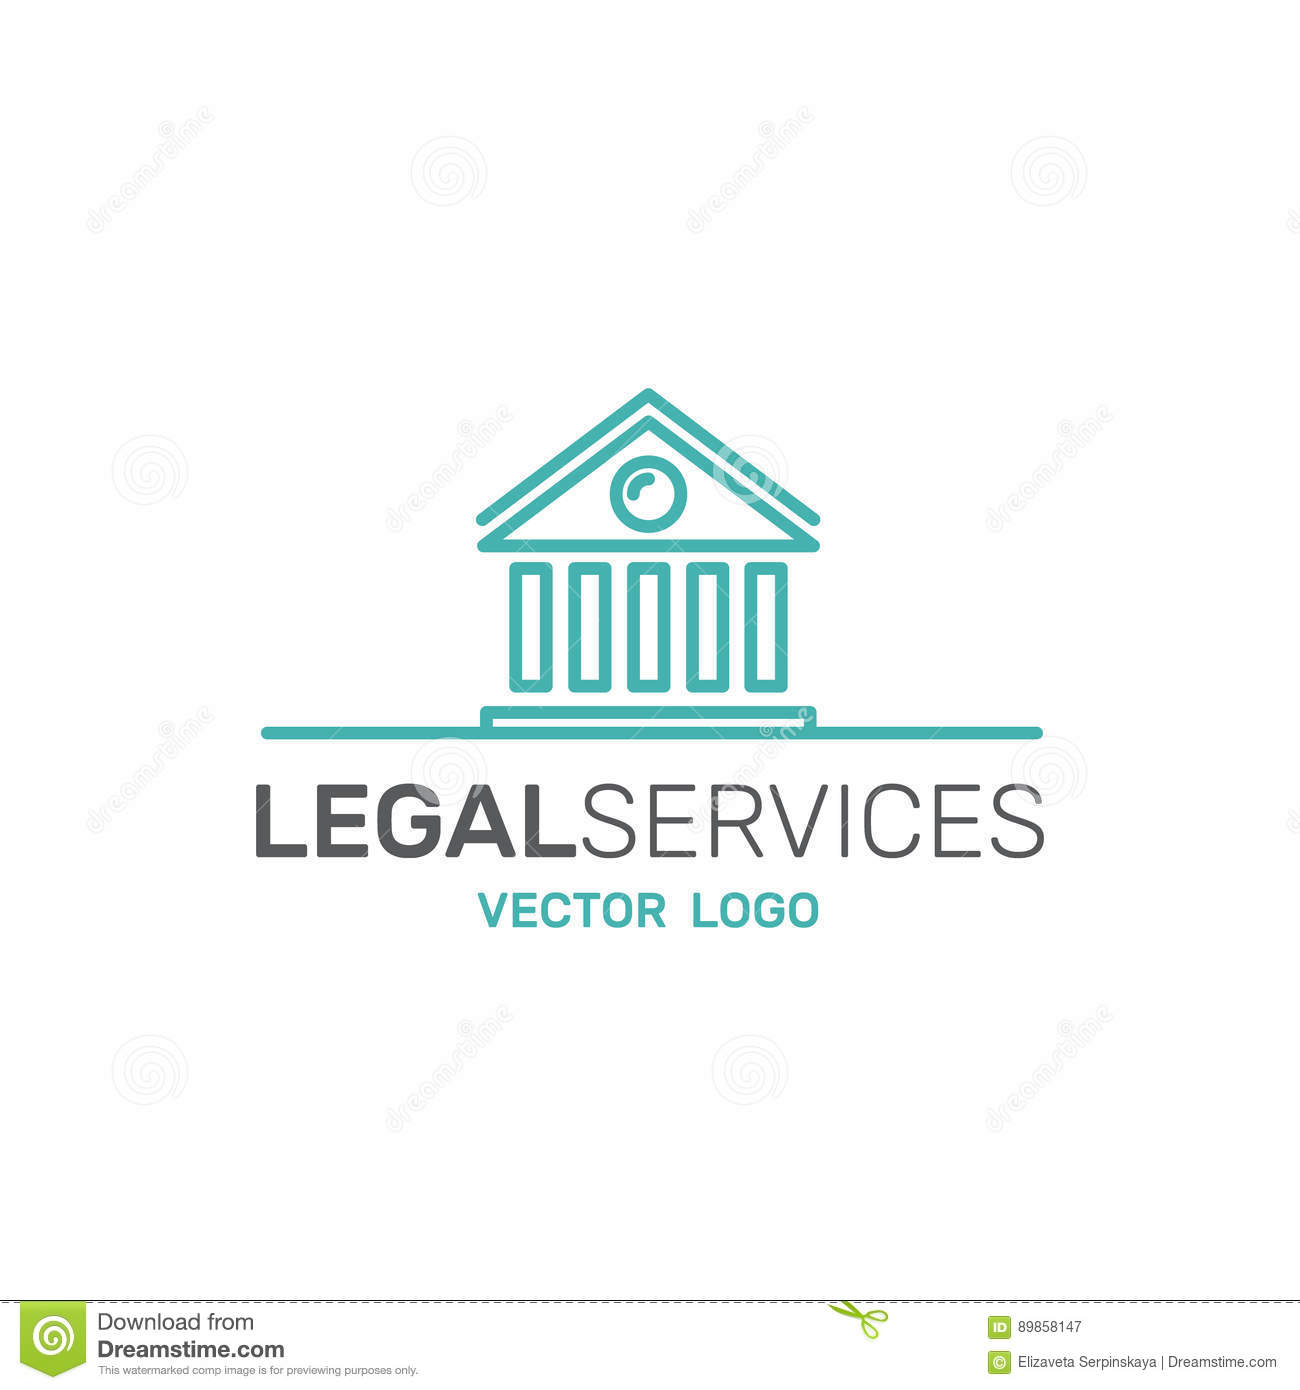 Legal services logo — 1